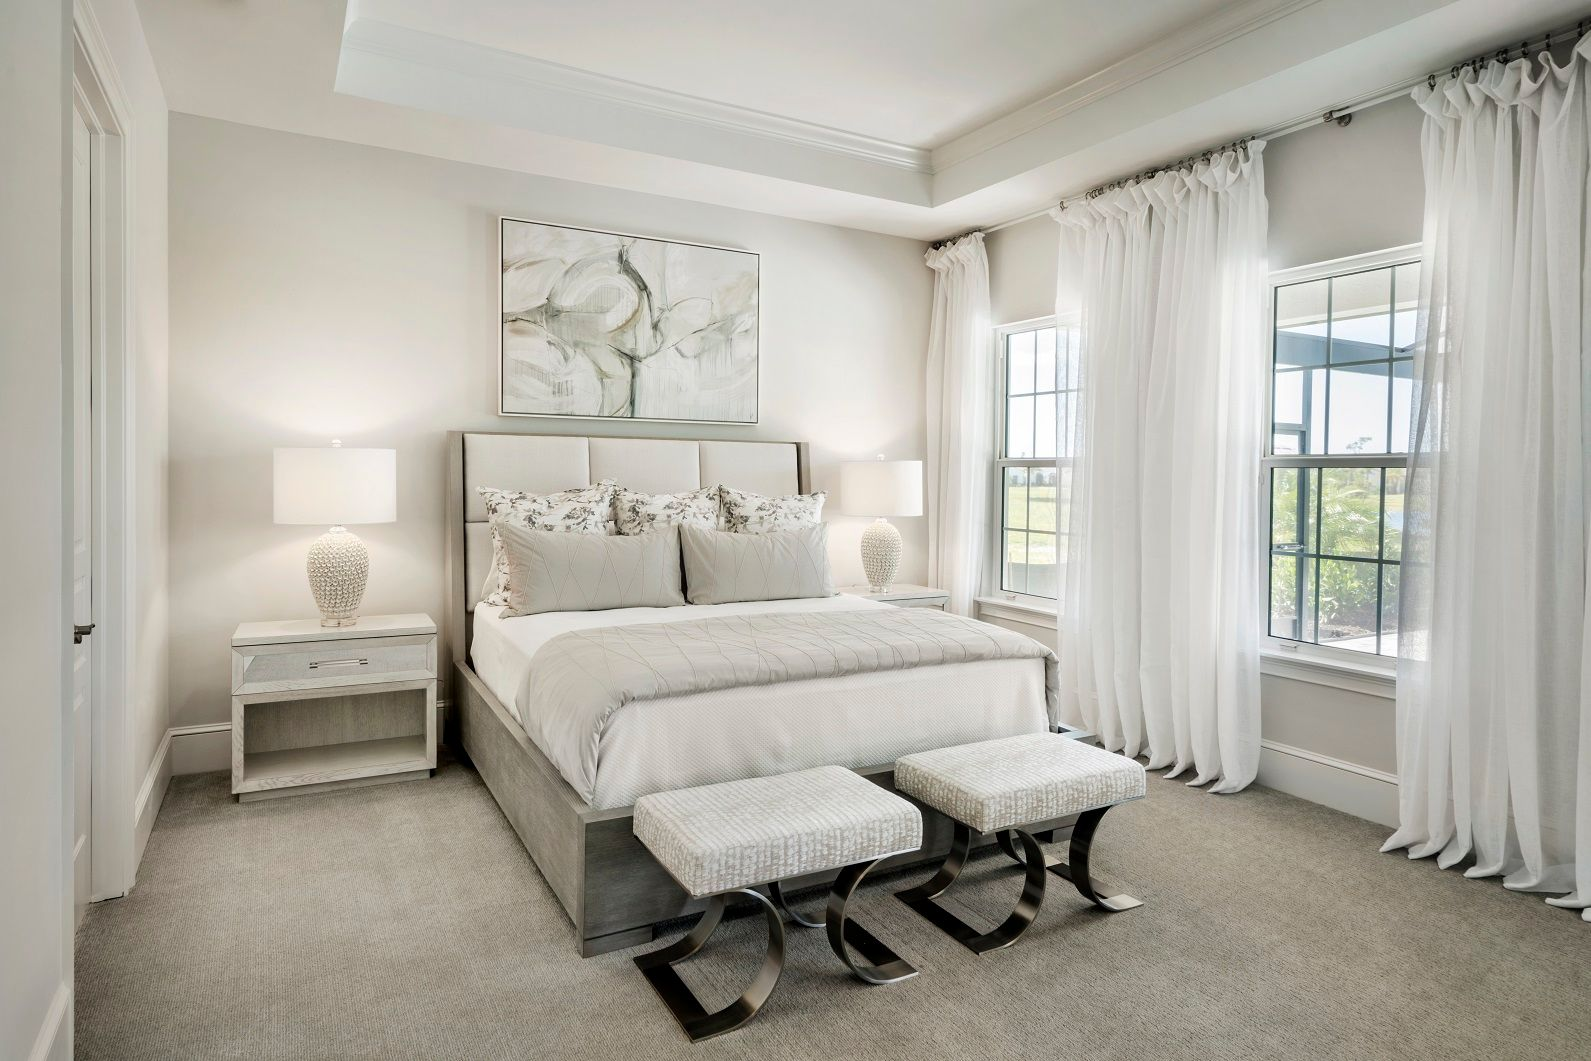 Bedroom featured in the Navarra II By Ashton Woods in Naples, FL